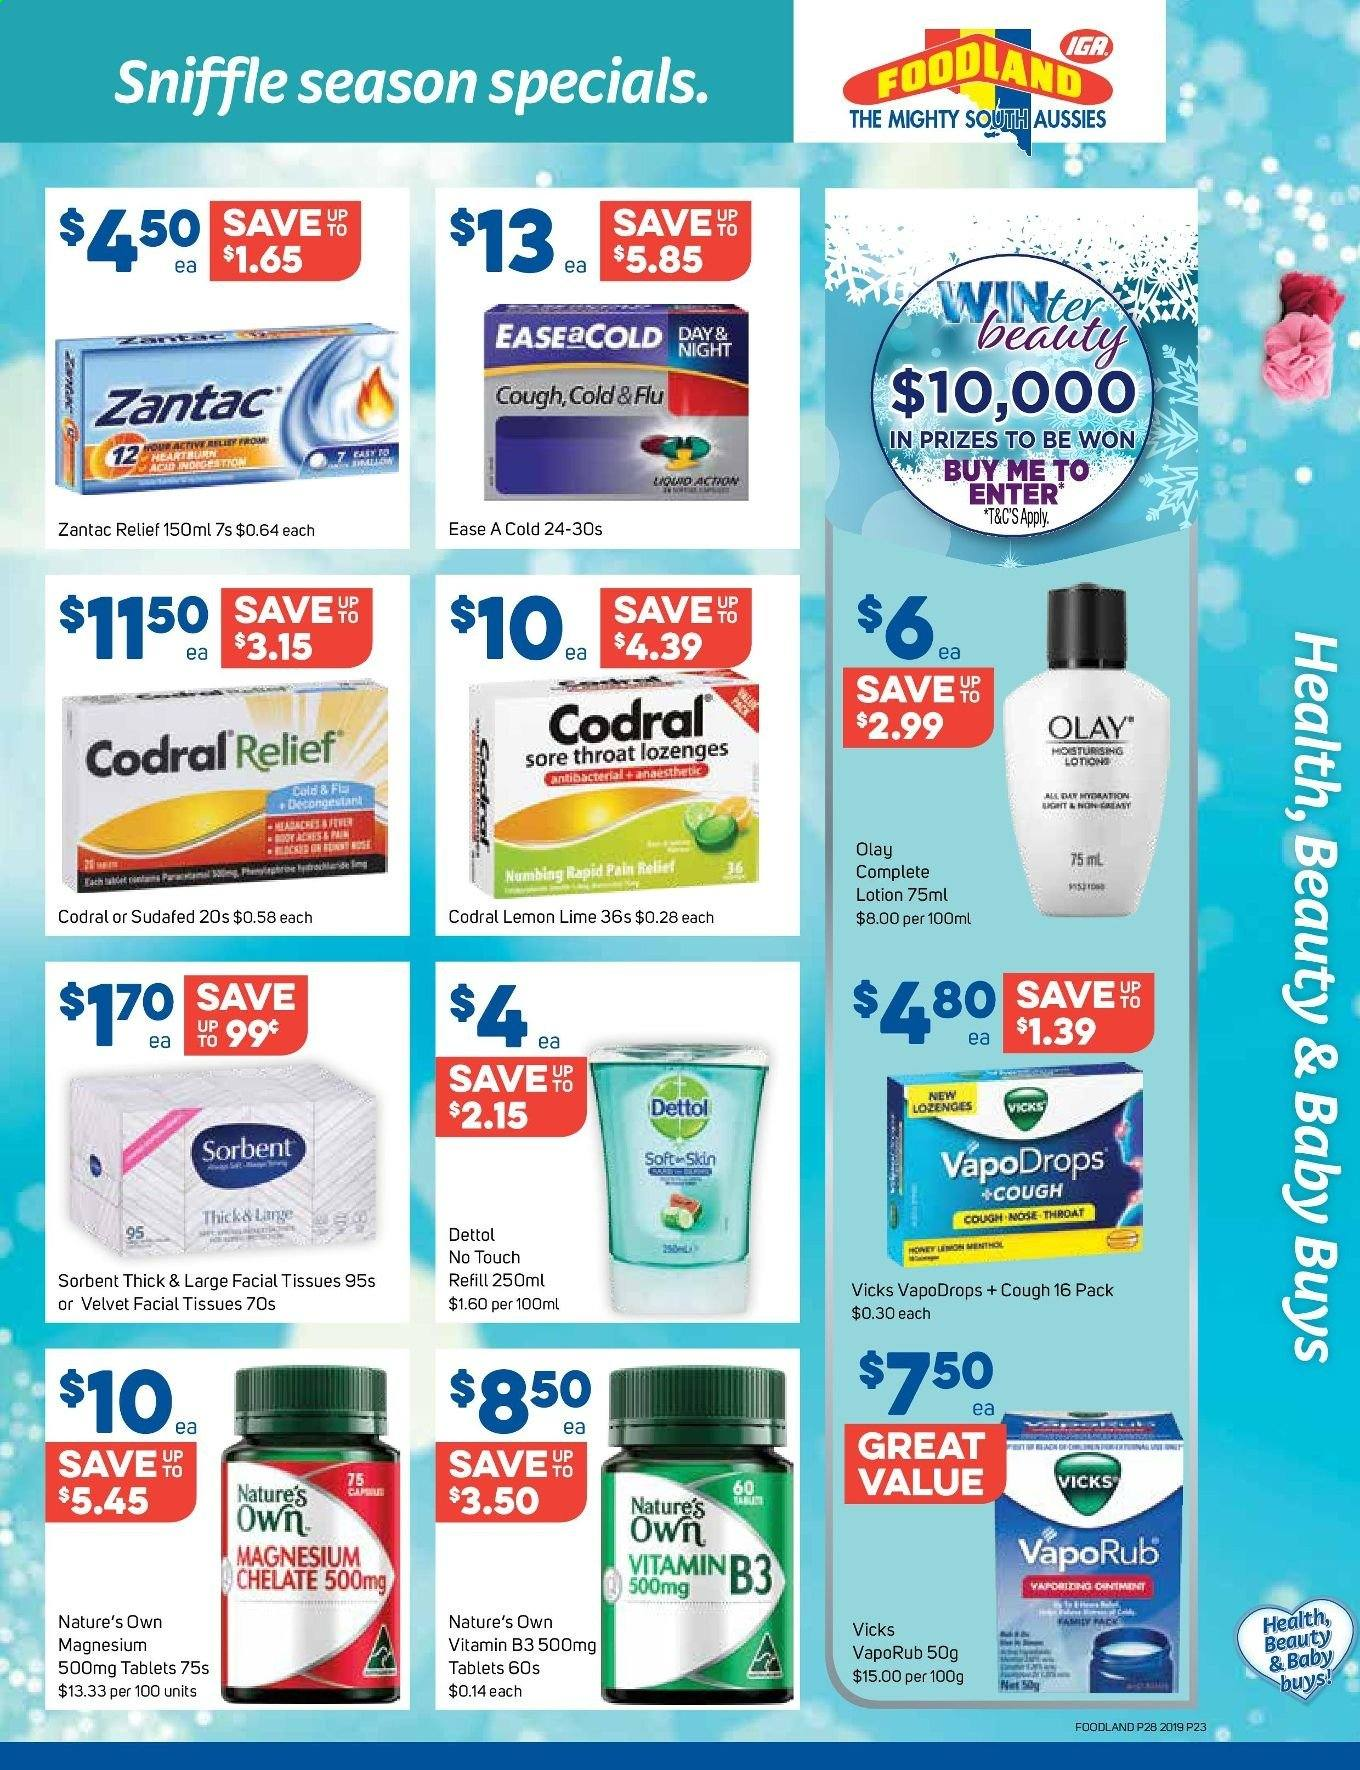 Foodland catalogue and weekly specials 10 7 2019 - 16 7 2019 | Au